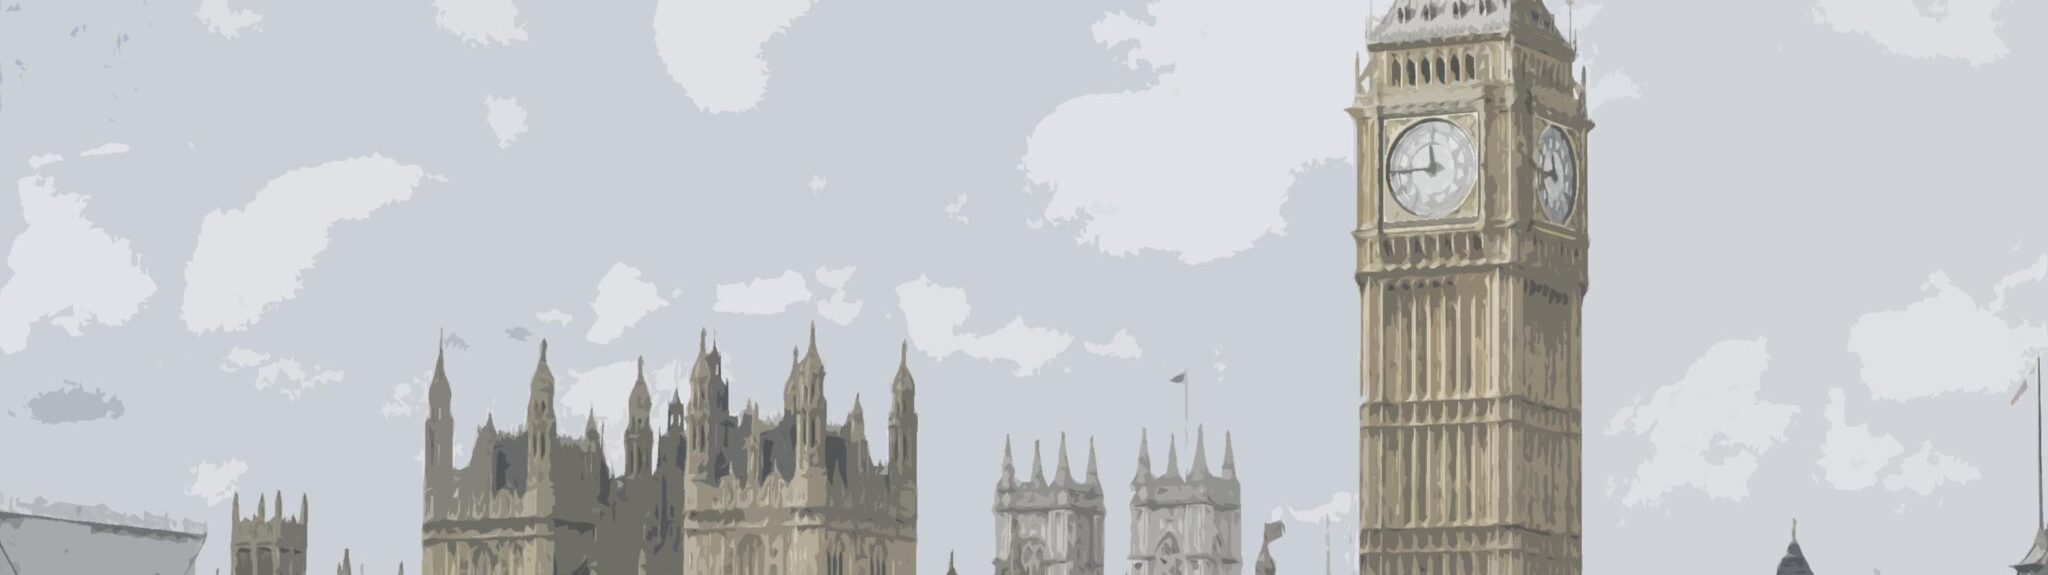 UK Parliament chooses to put RegTech and finance on 2020 Budget